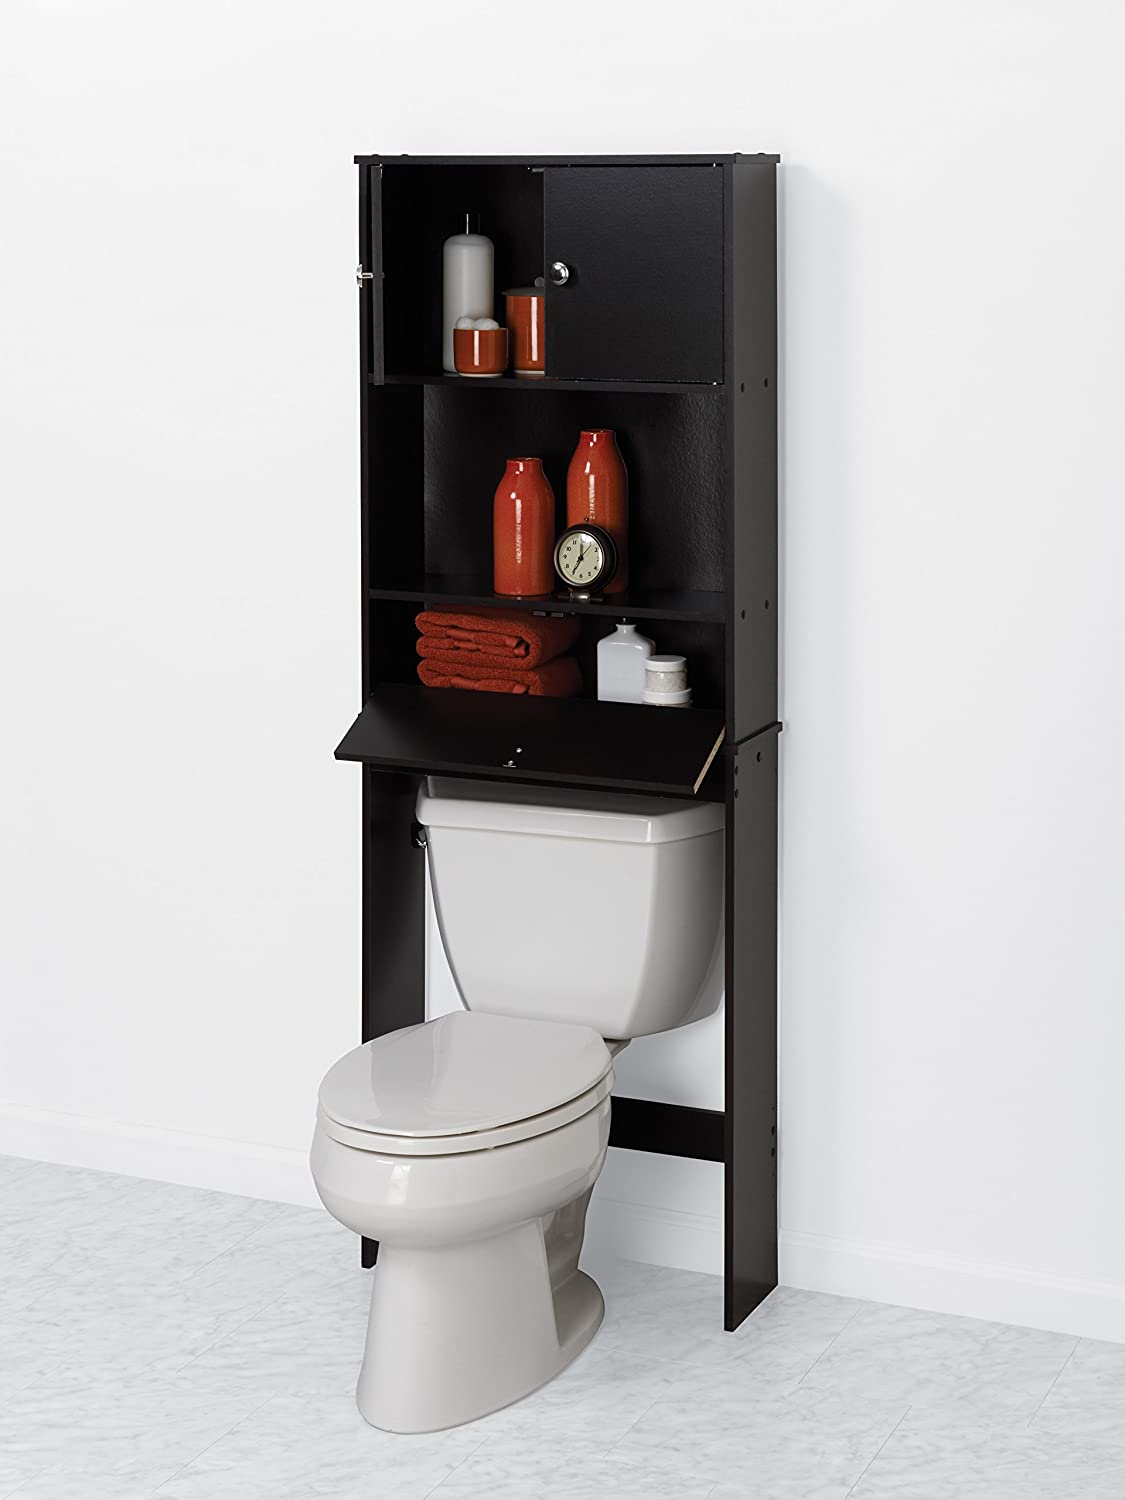 Brilliant Details About SLIM SPACESAVING ROLLING BATHROOM STORAGE ORGANIZER